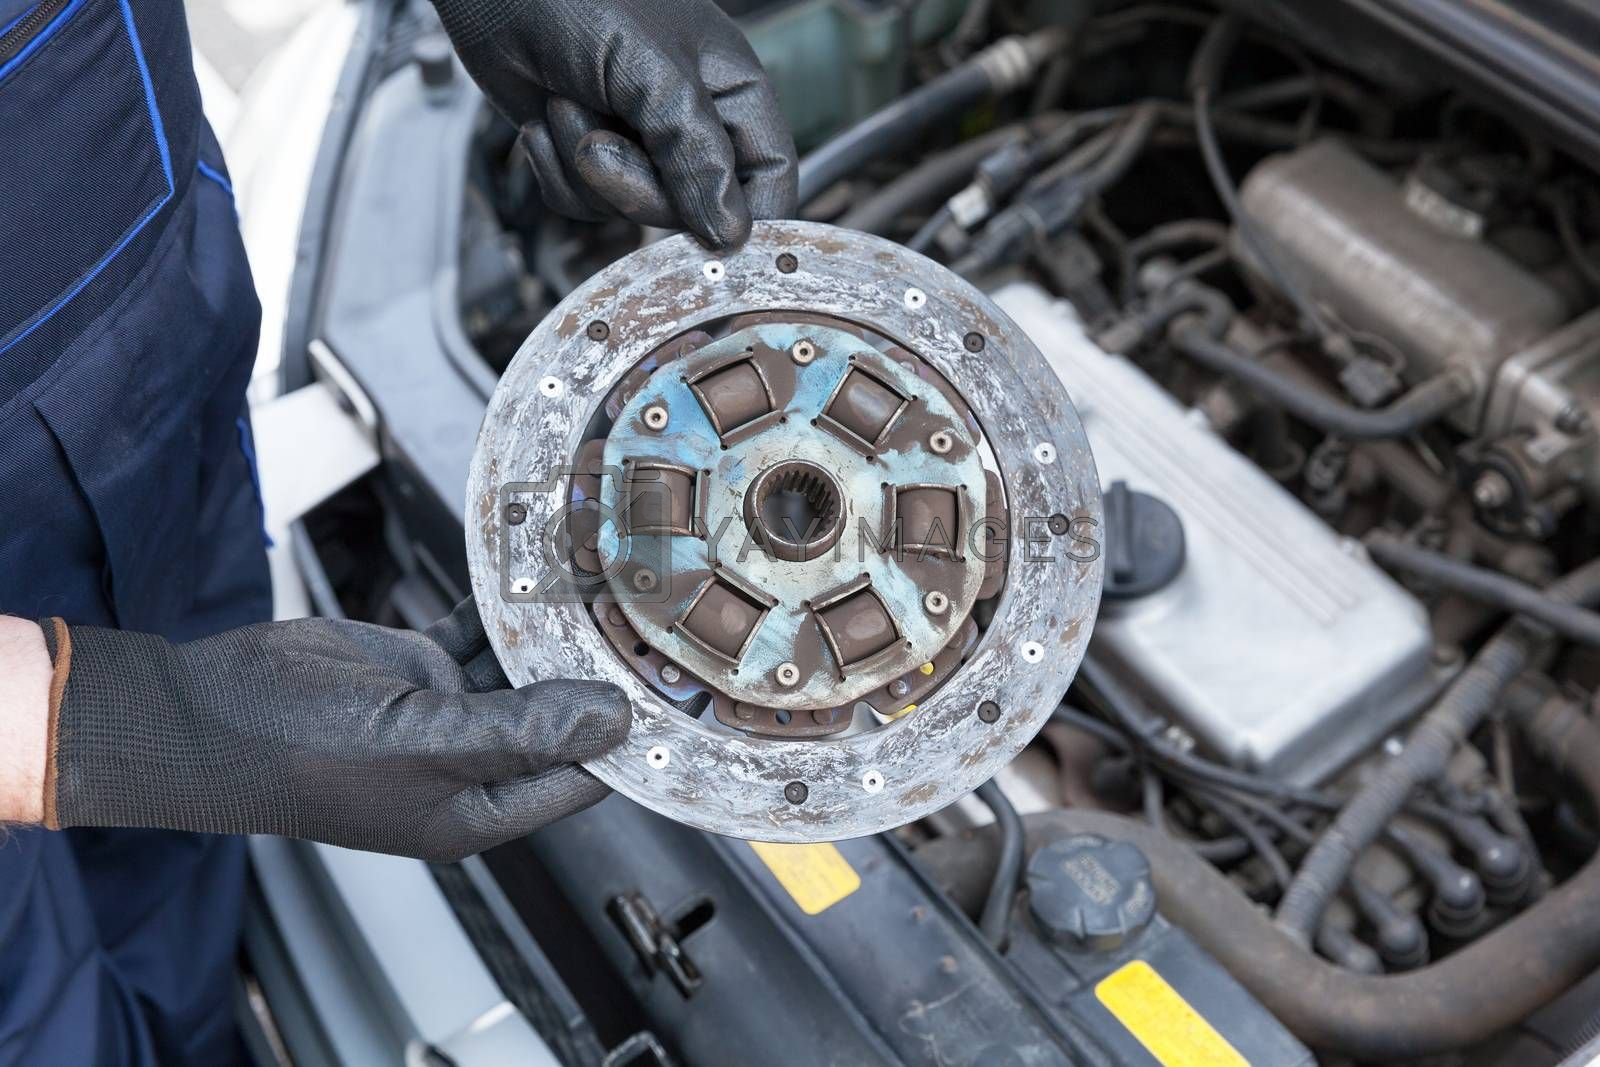 Auto mechanic wearing protective work gloves holding old clutch disc over a car engine